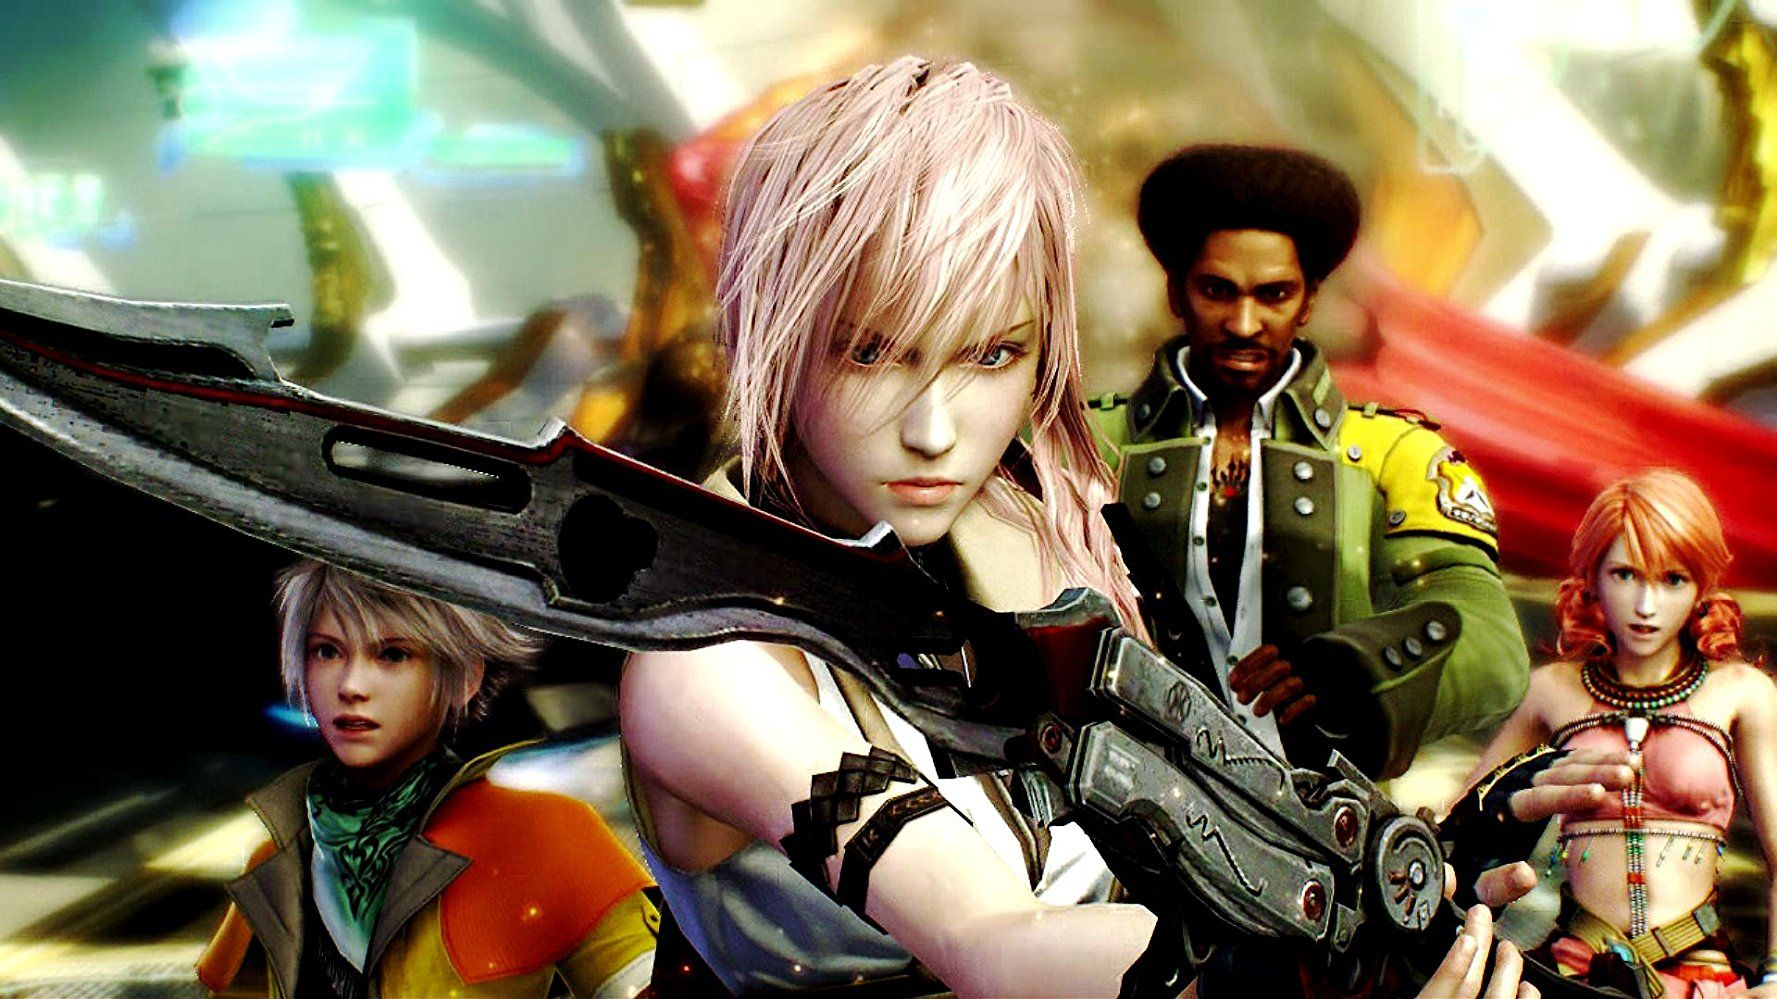 Photos we love from our favorite video games lightning